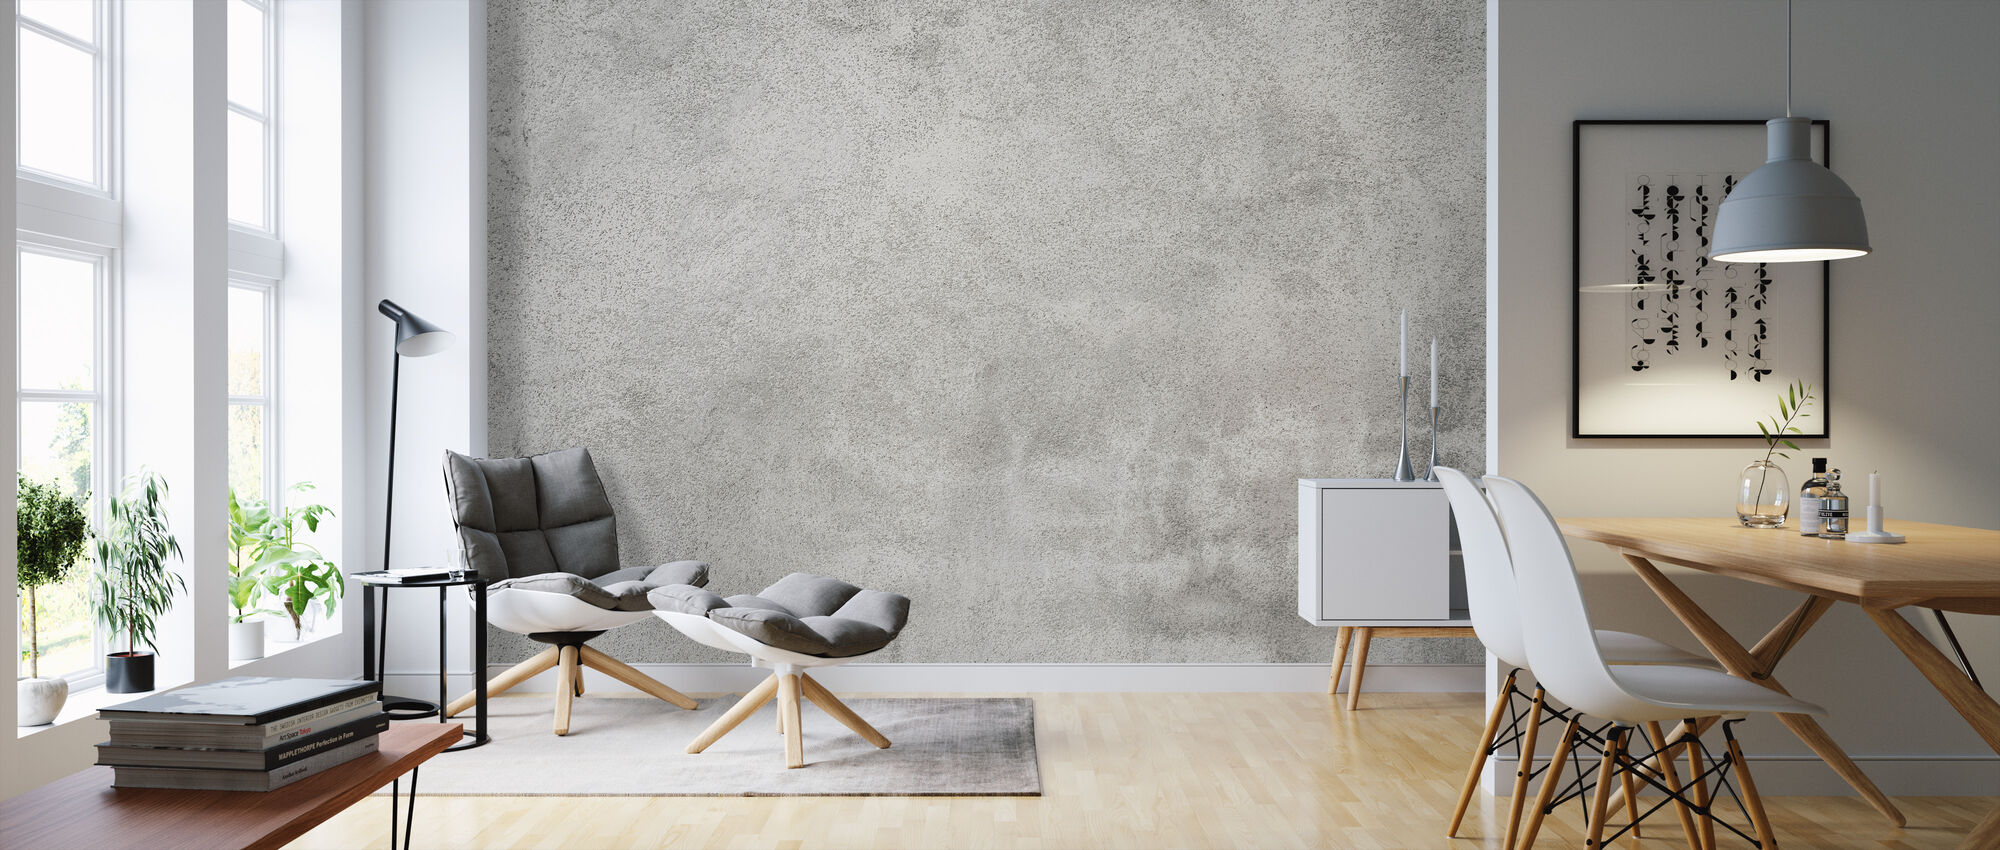 Grunge Concrete Wall - Wallpaper - Living Room